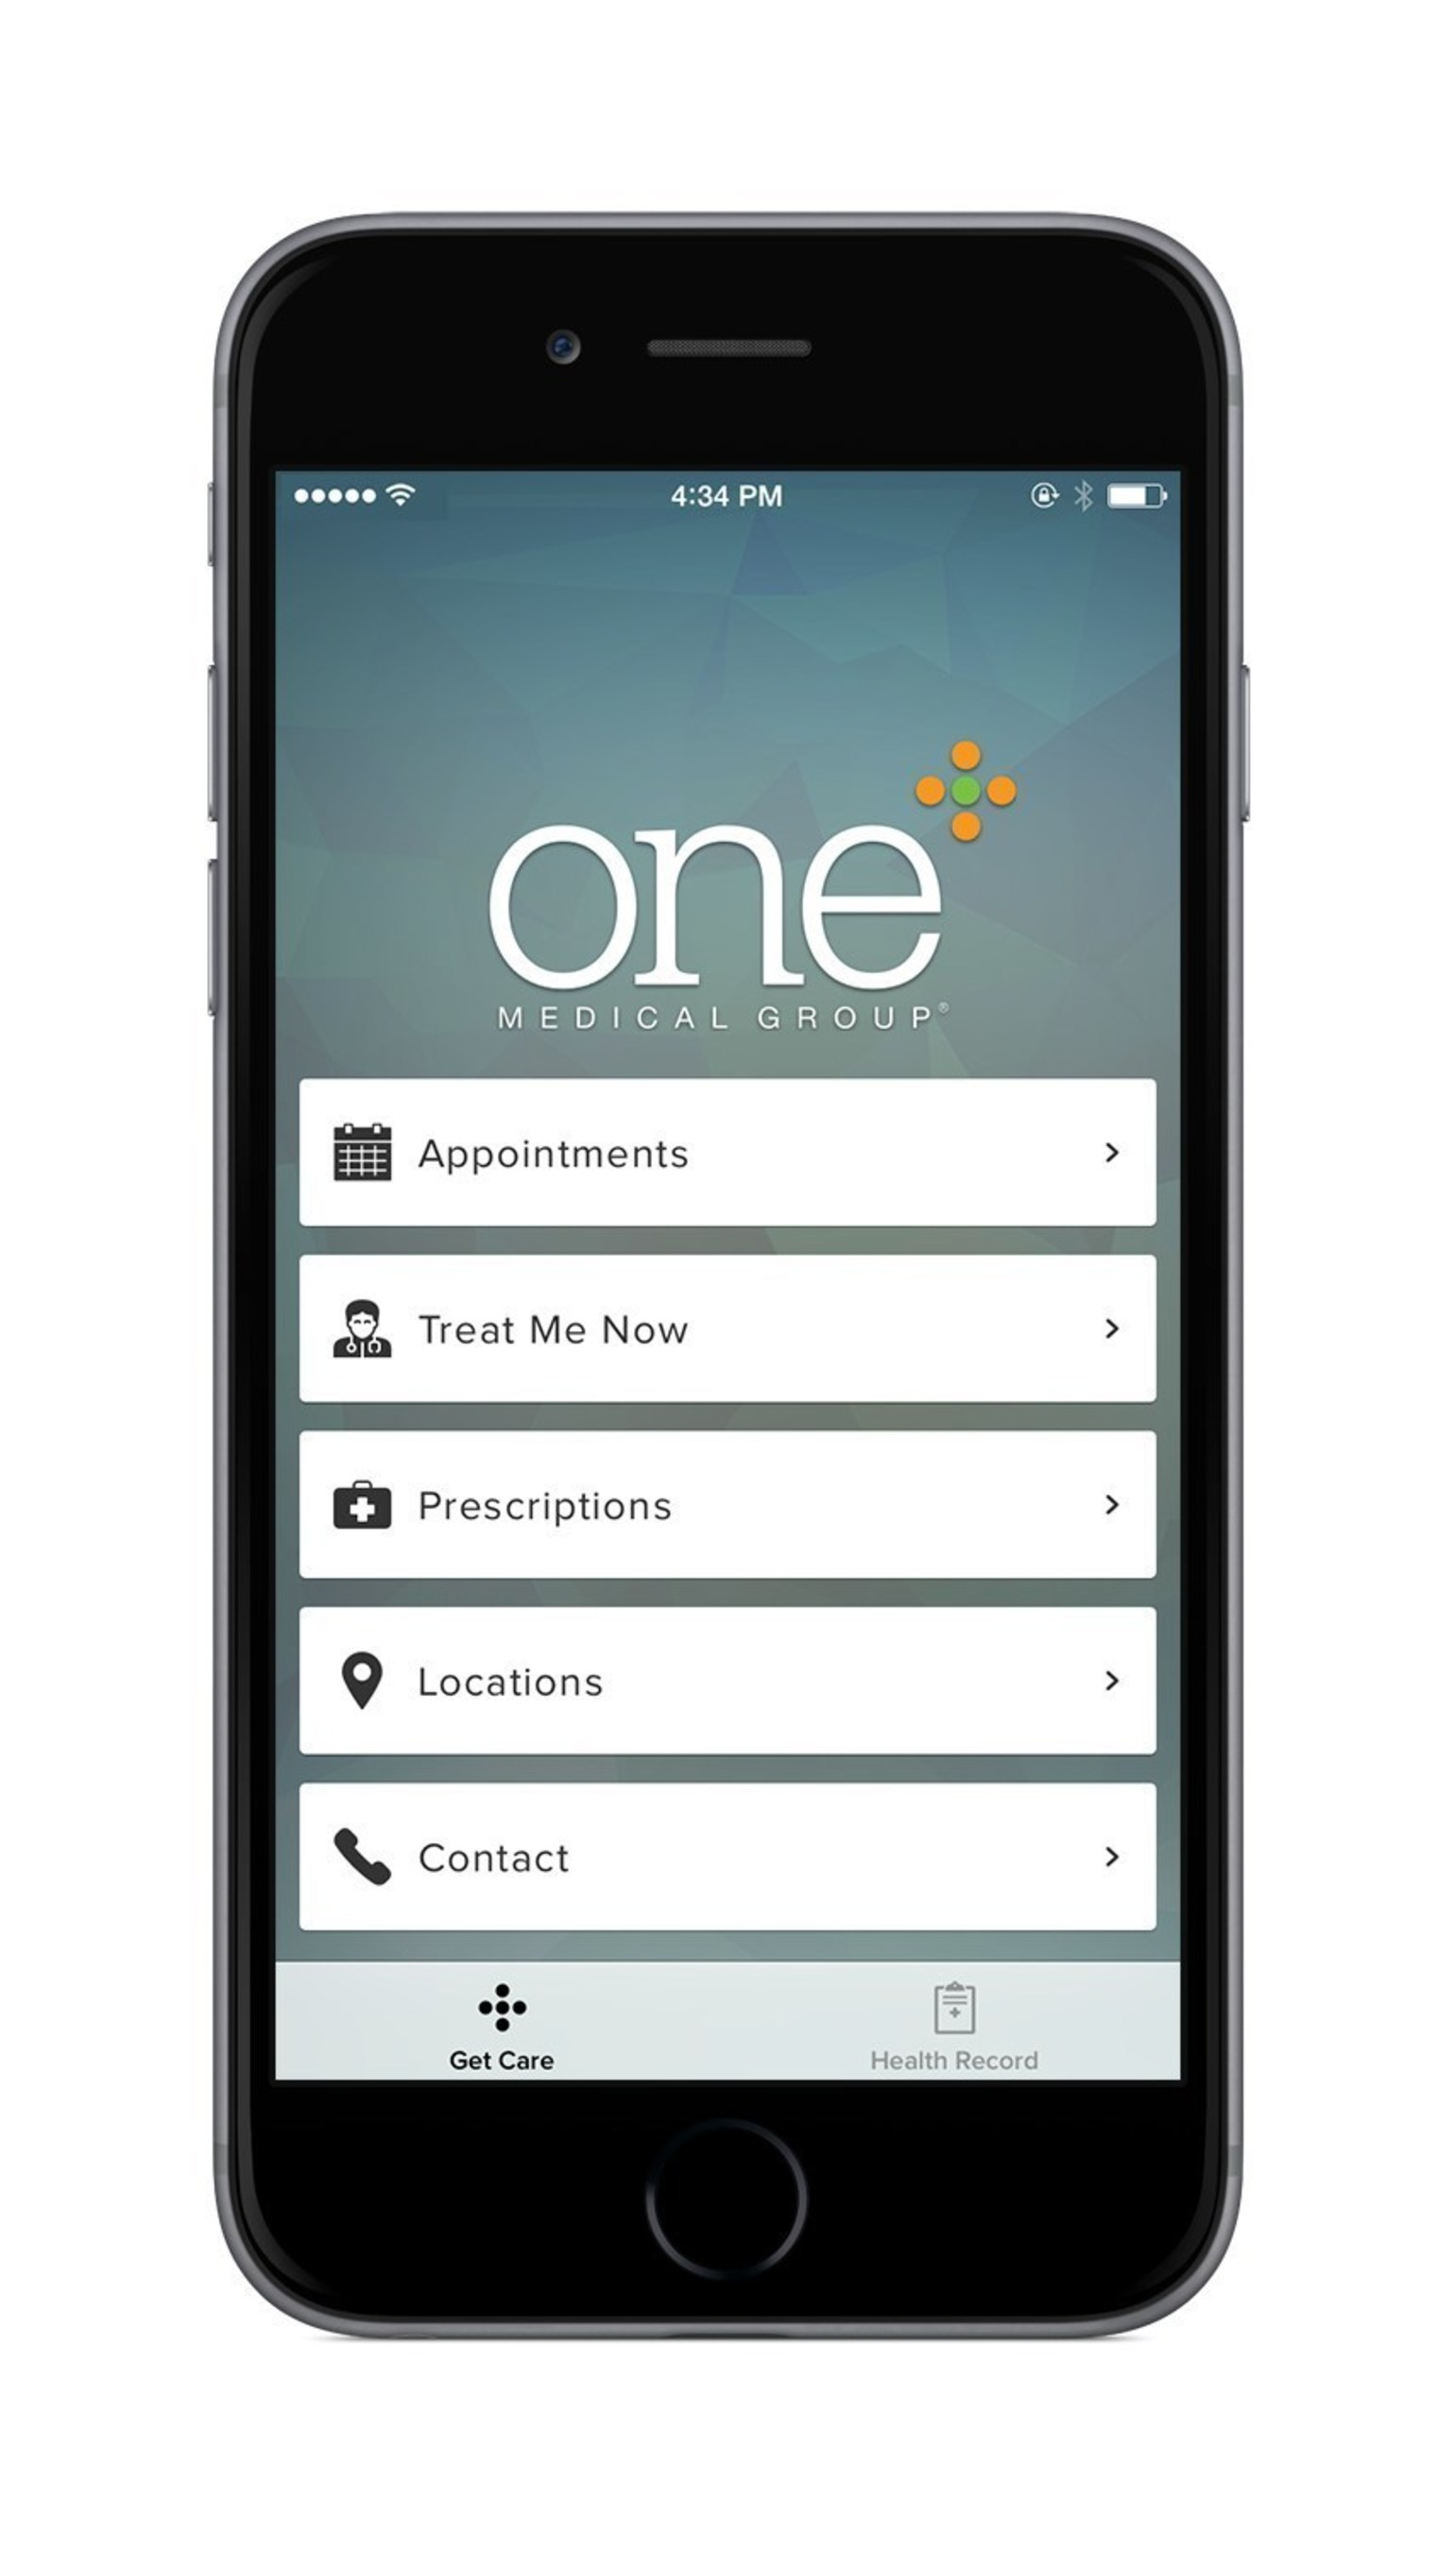 One Medical's free mobile app allows members to get care on the go.